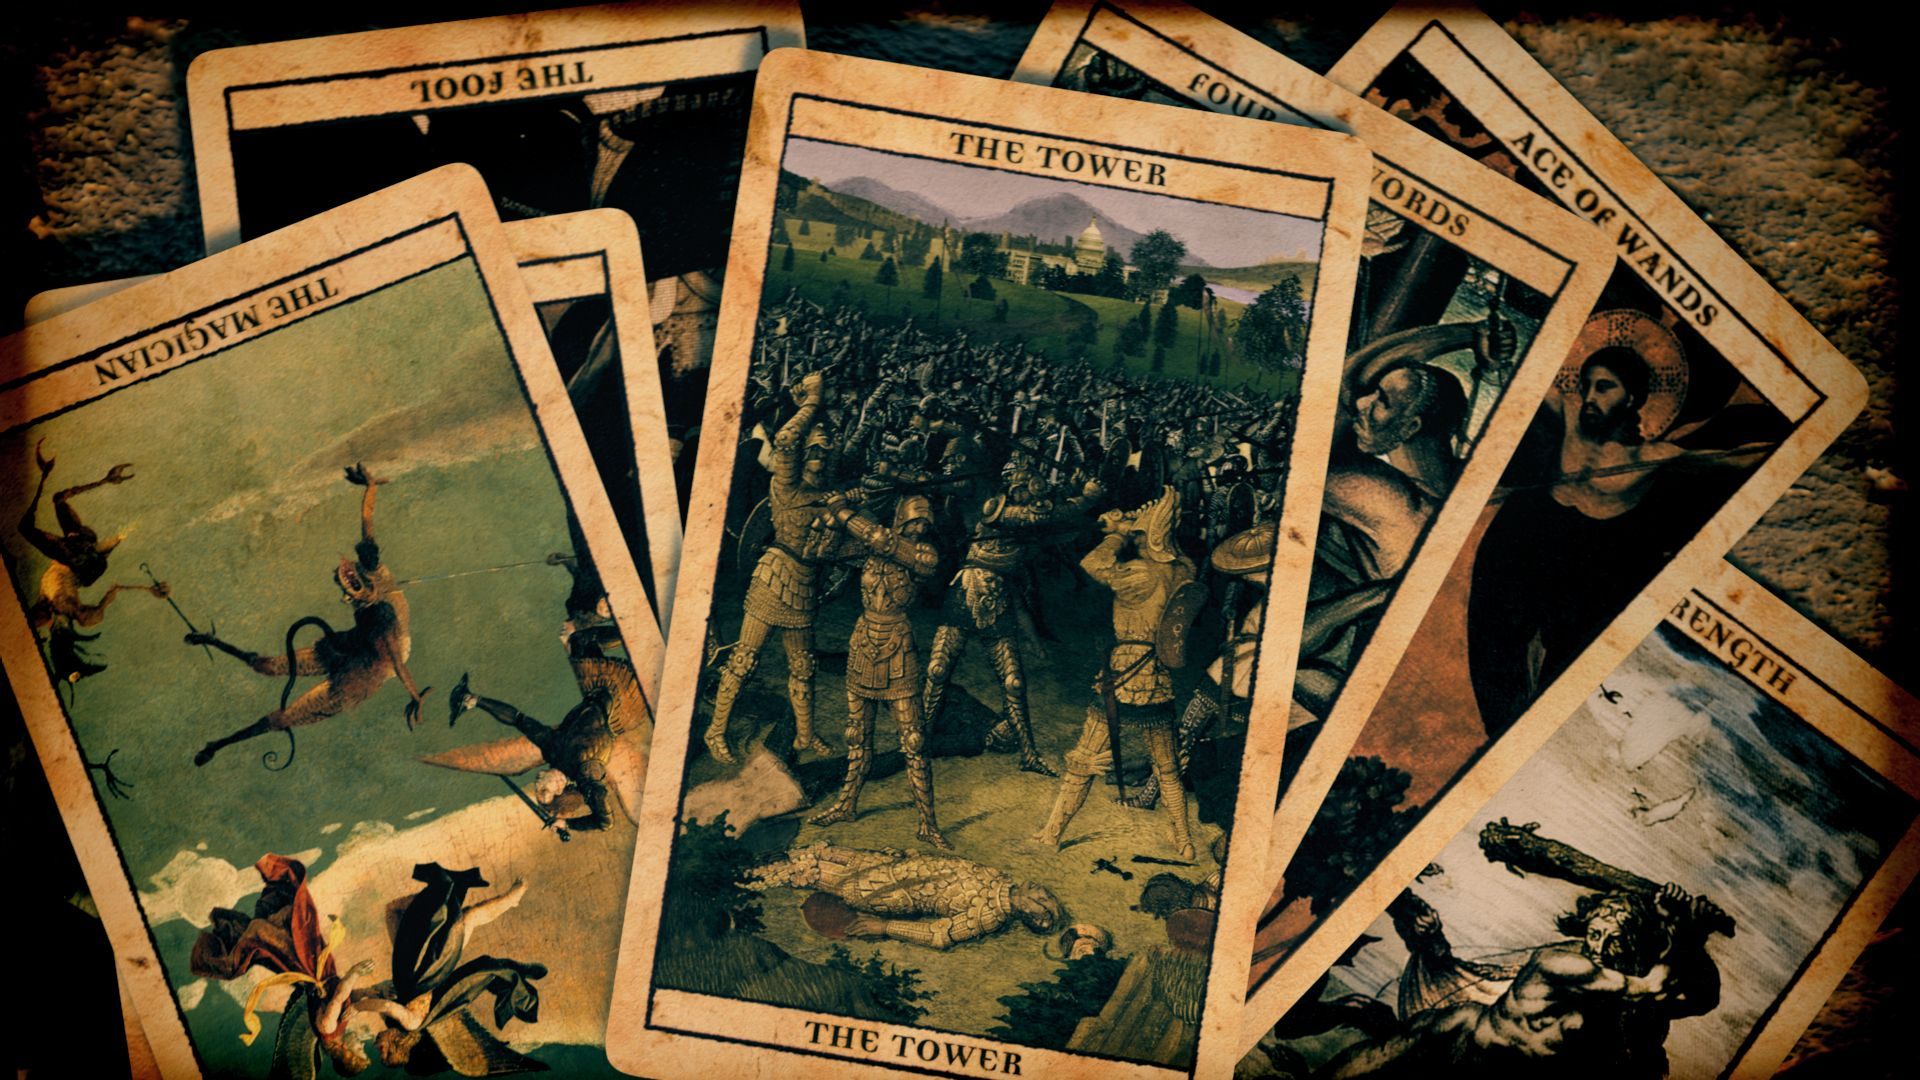 The Tarot cards from Carnivale